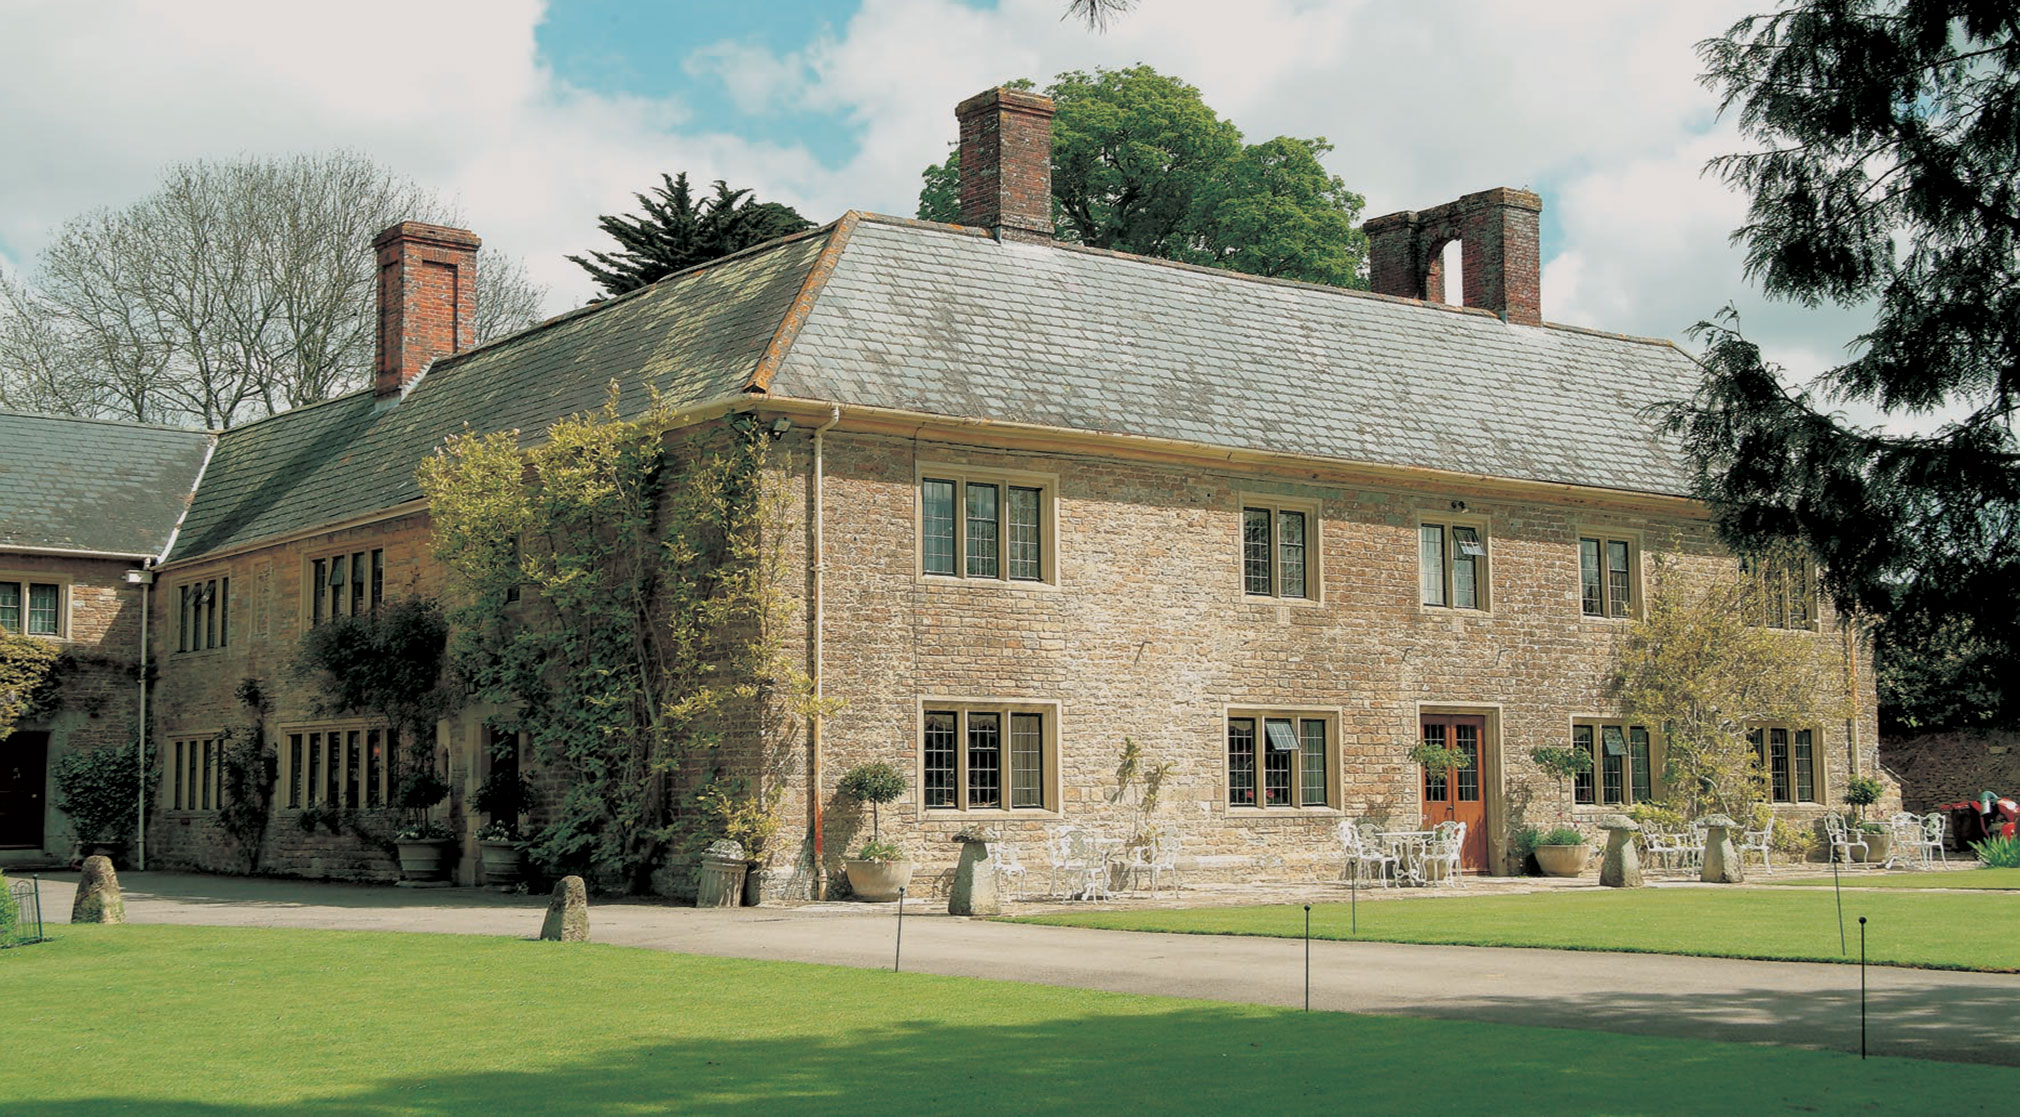 Country house hotels Dorset